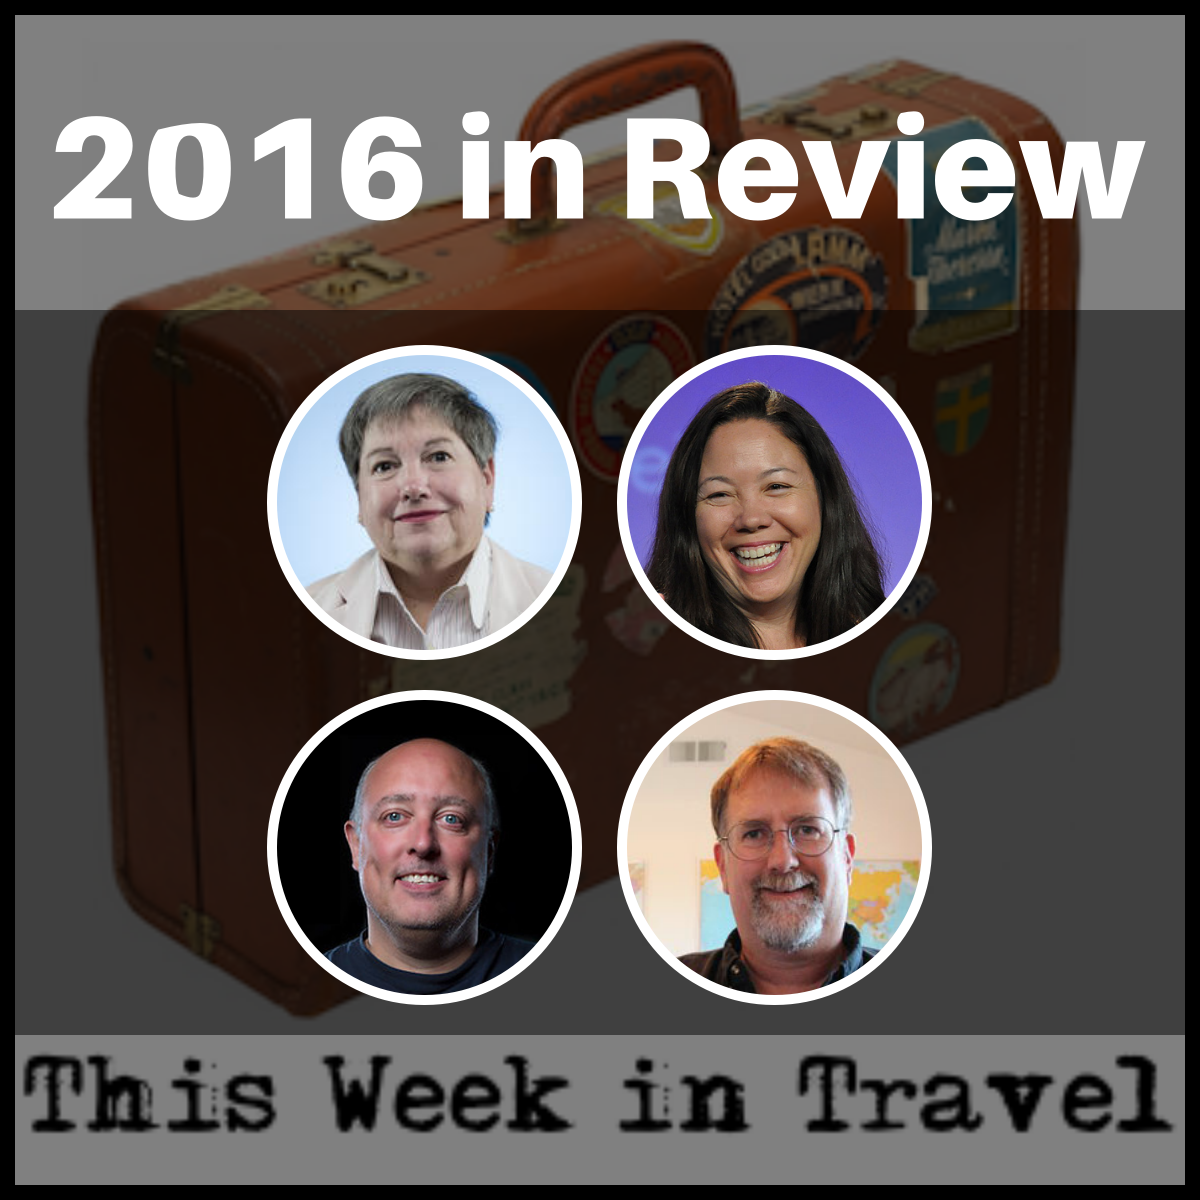 2016 in Review – This Week in Travel #216